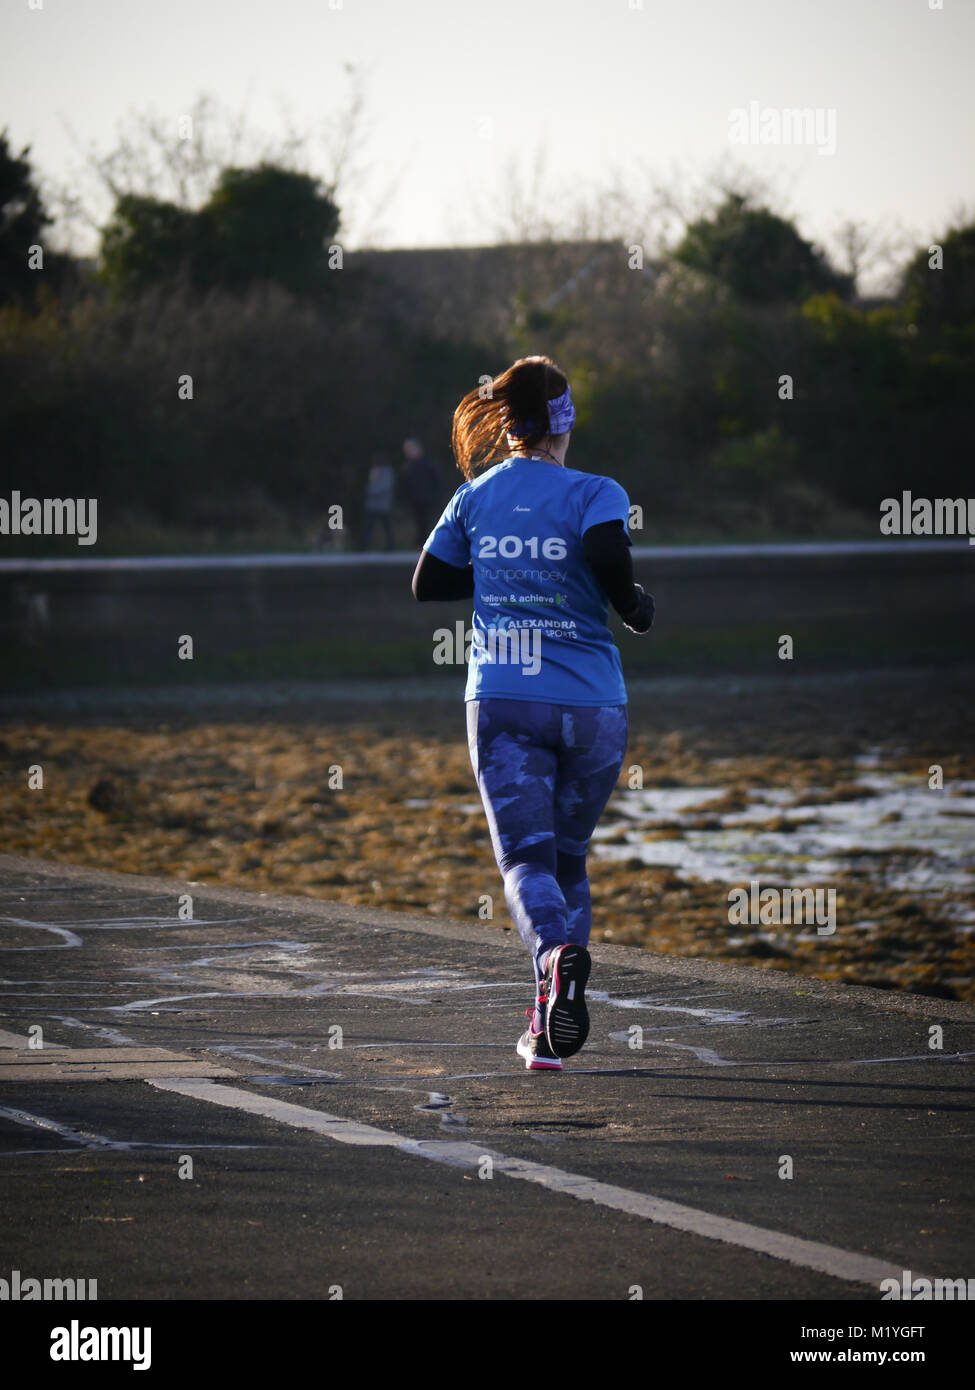 a-young-lady-running-along-a-public-footpath-M1YGFT.jpg